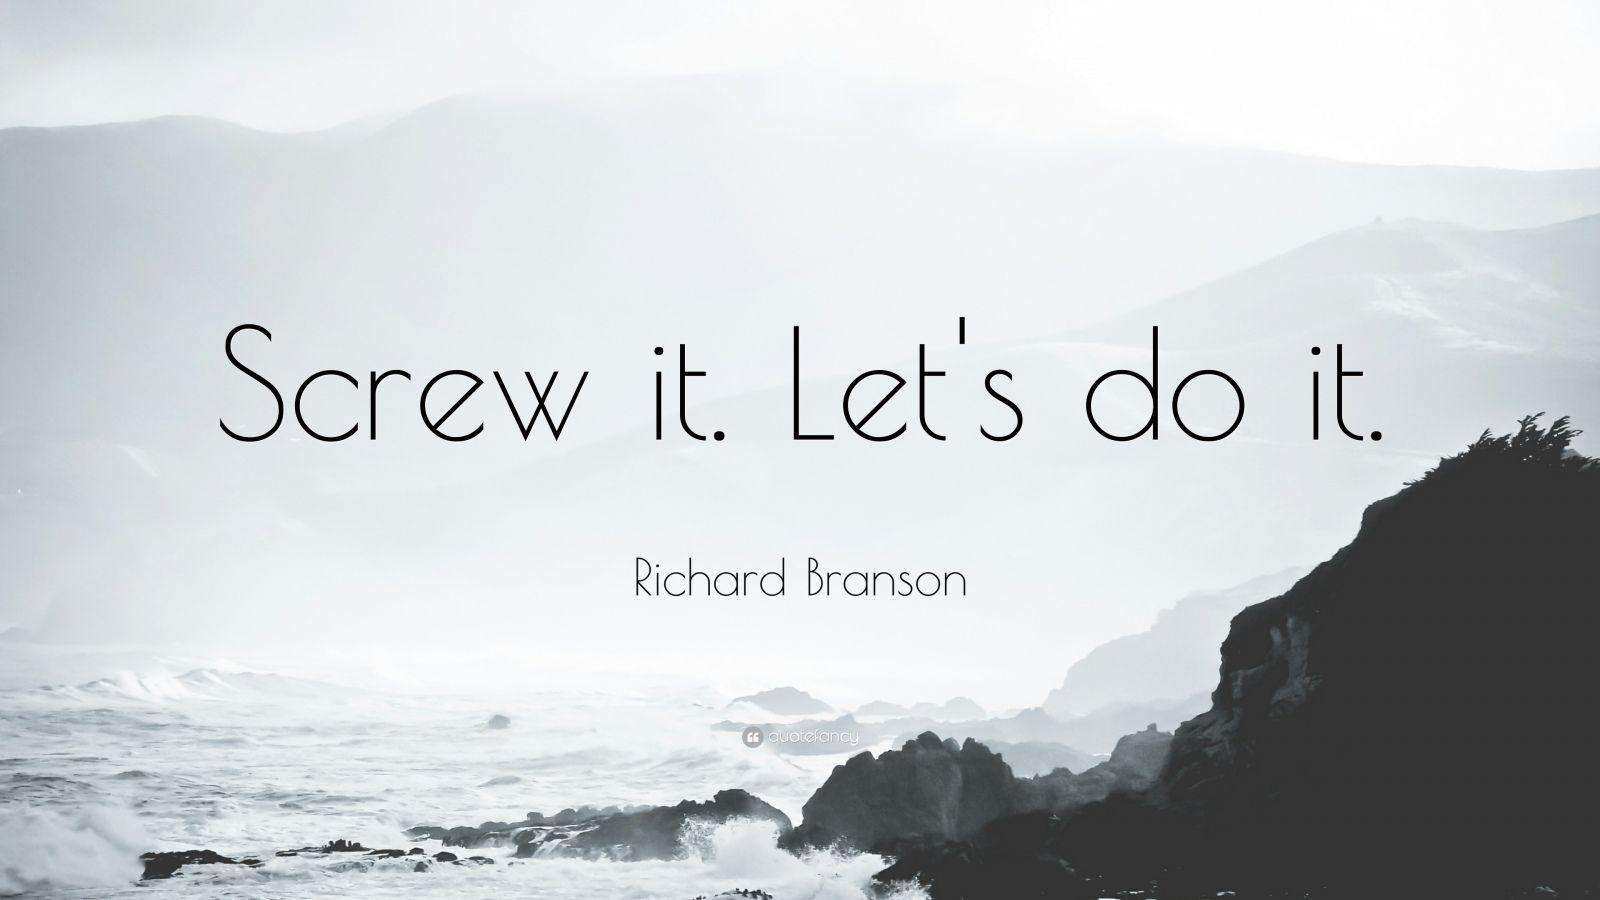 Richard Branson Quotes (100 wallpapers) - Quotefancy